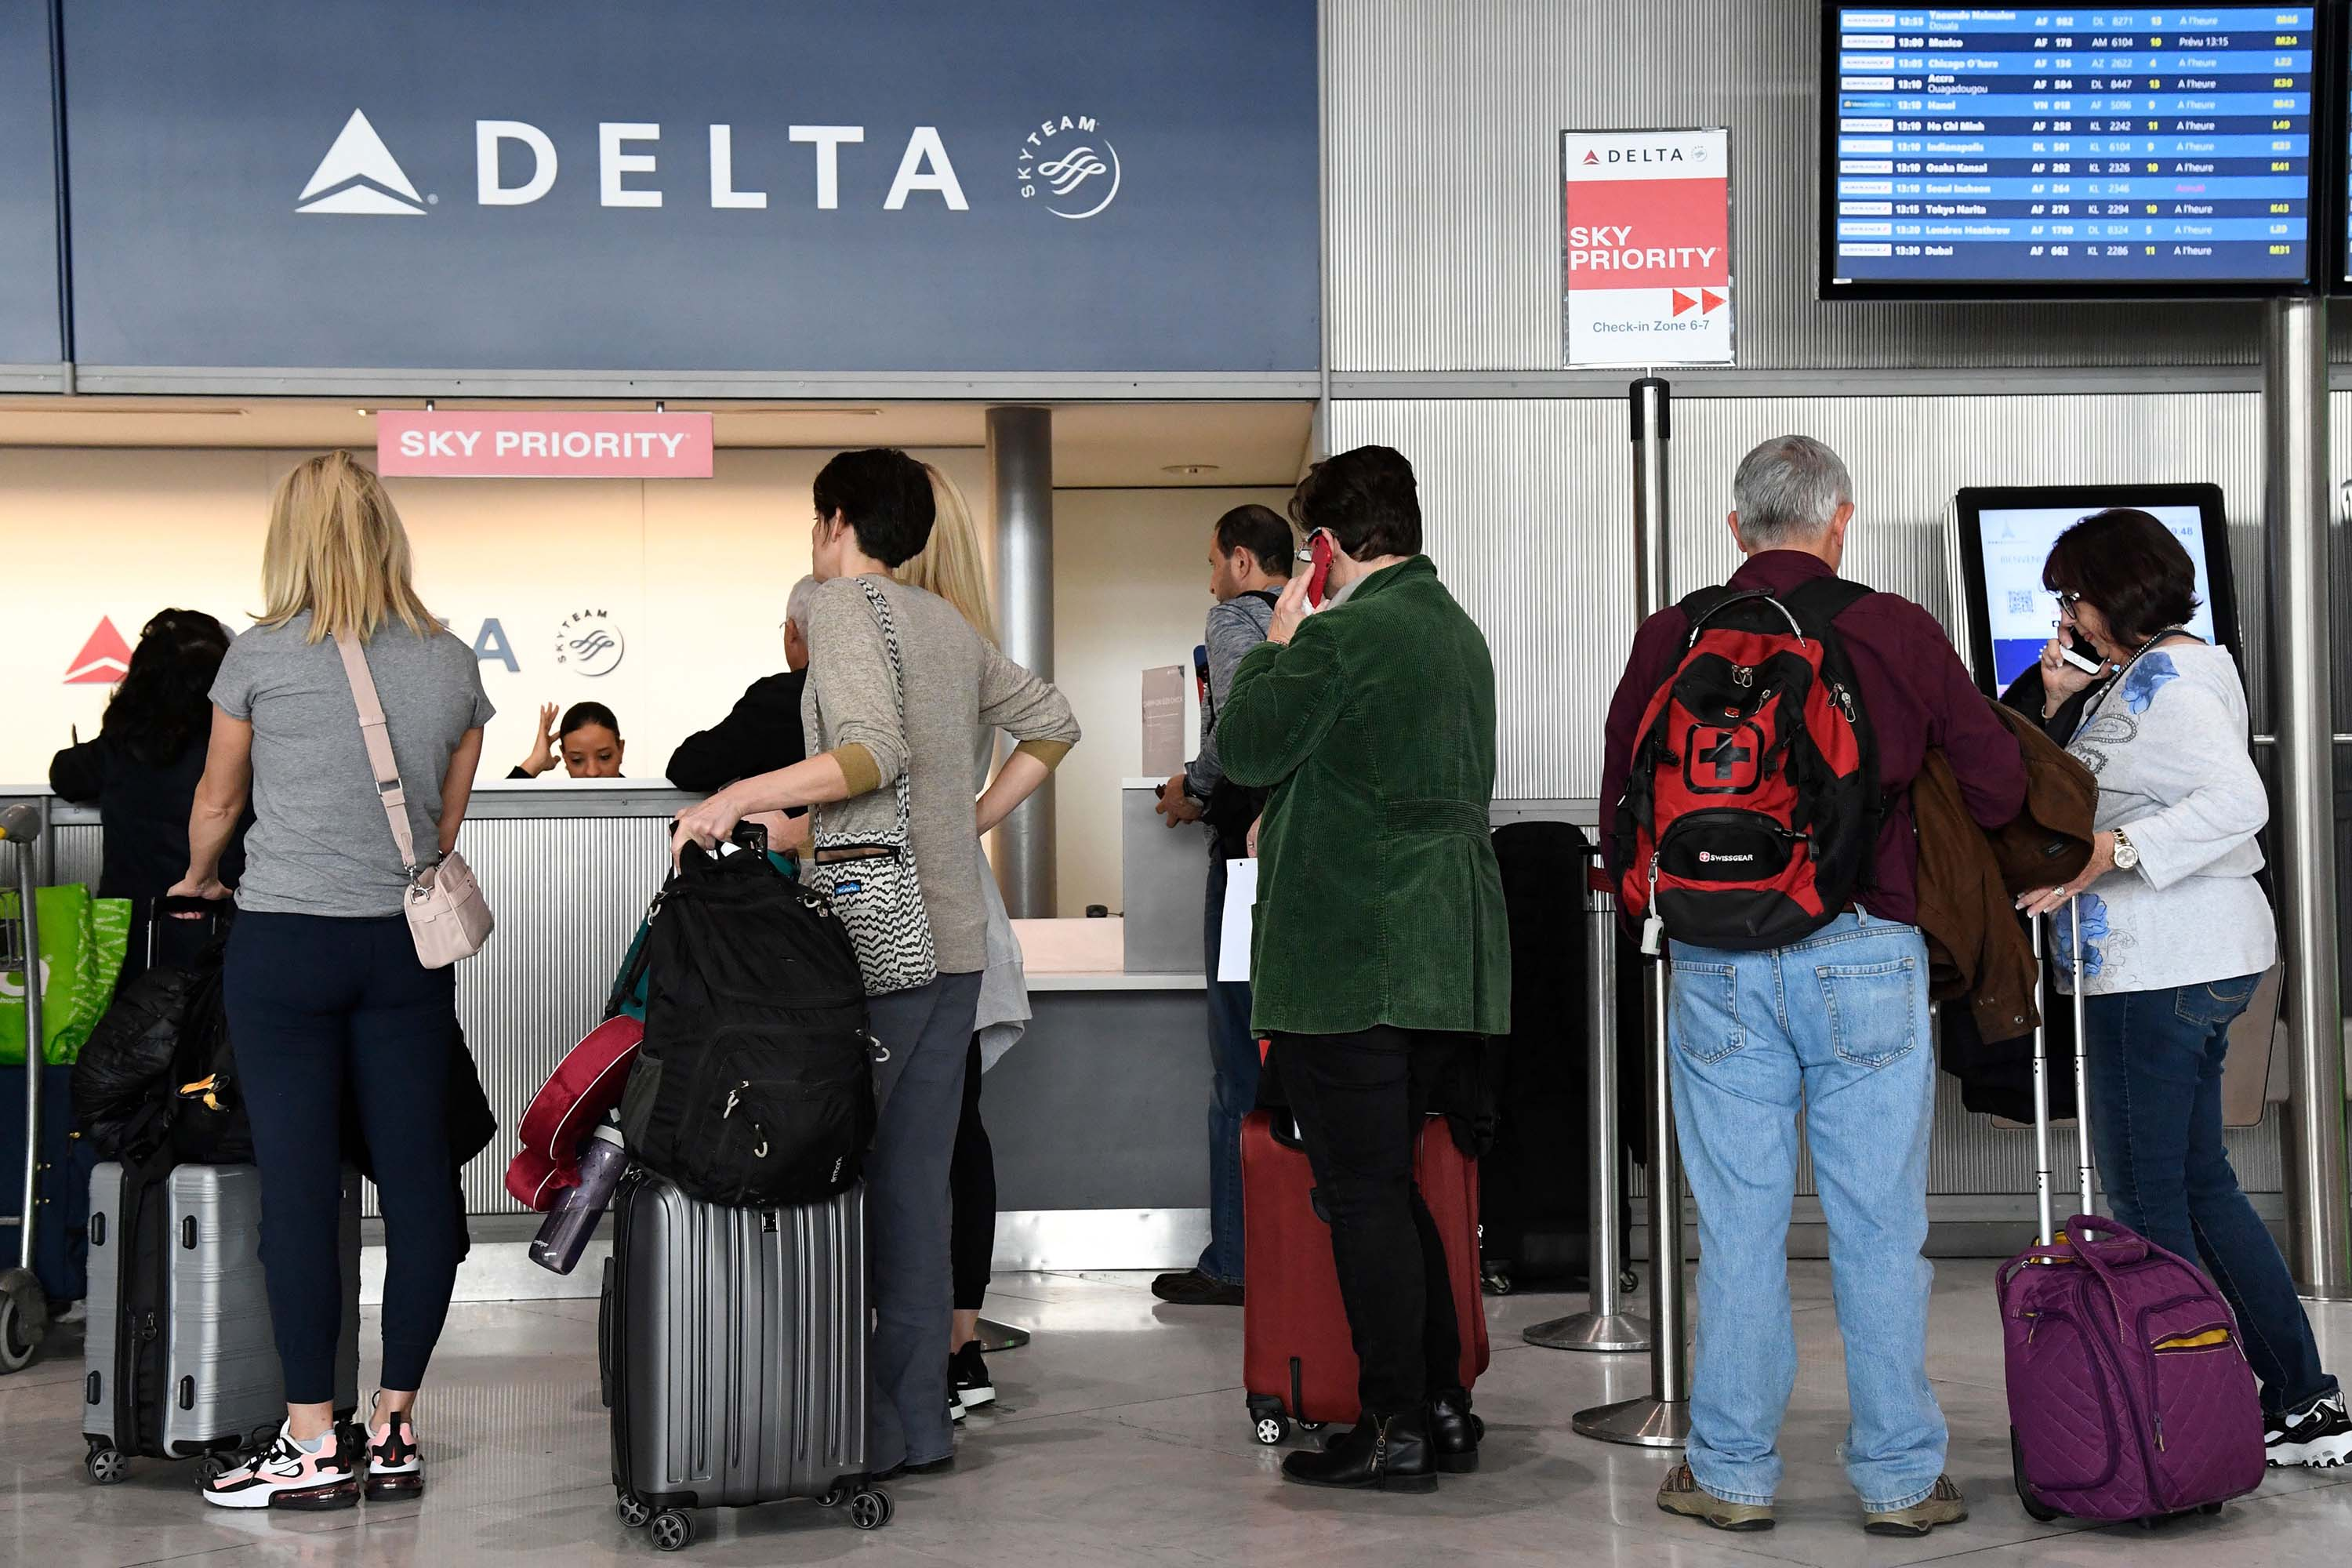 Passengers line up at a Delta Airlines desk at Paris-Charles-de-Gaulle airport in France on Thursday.